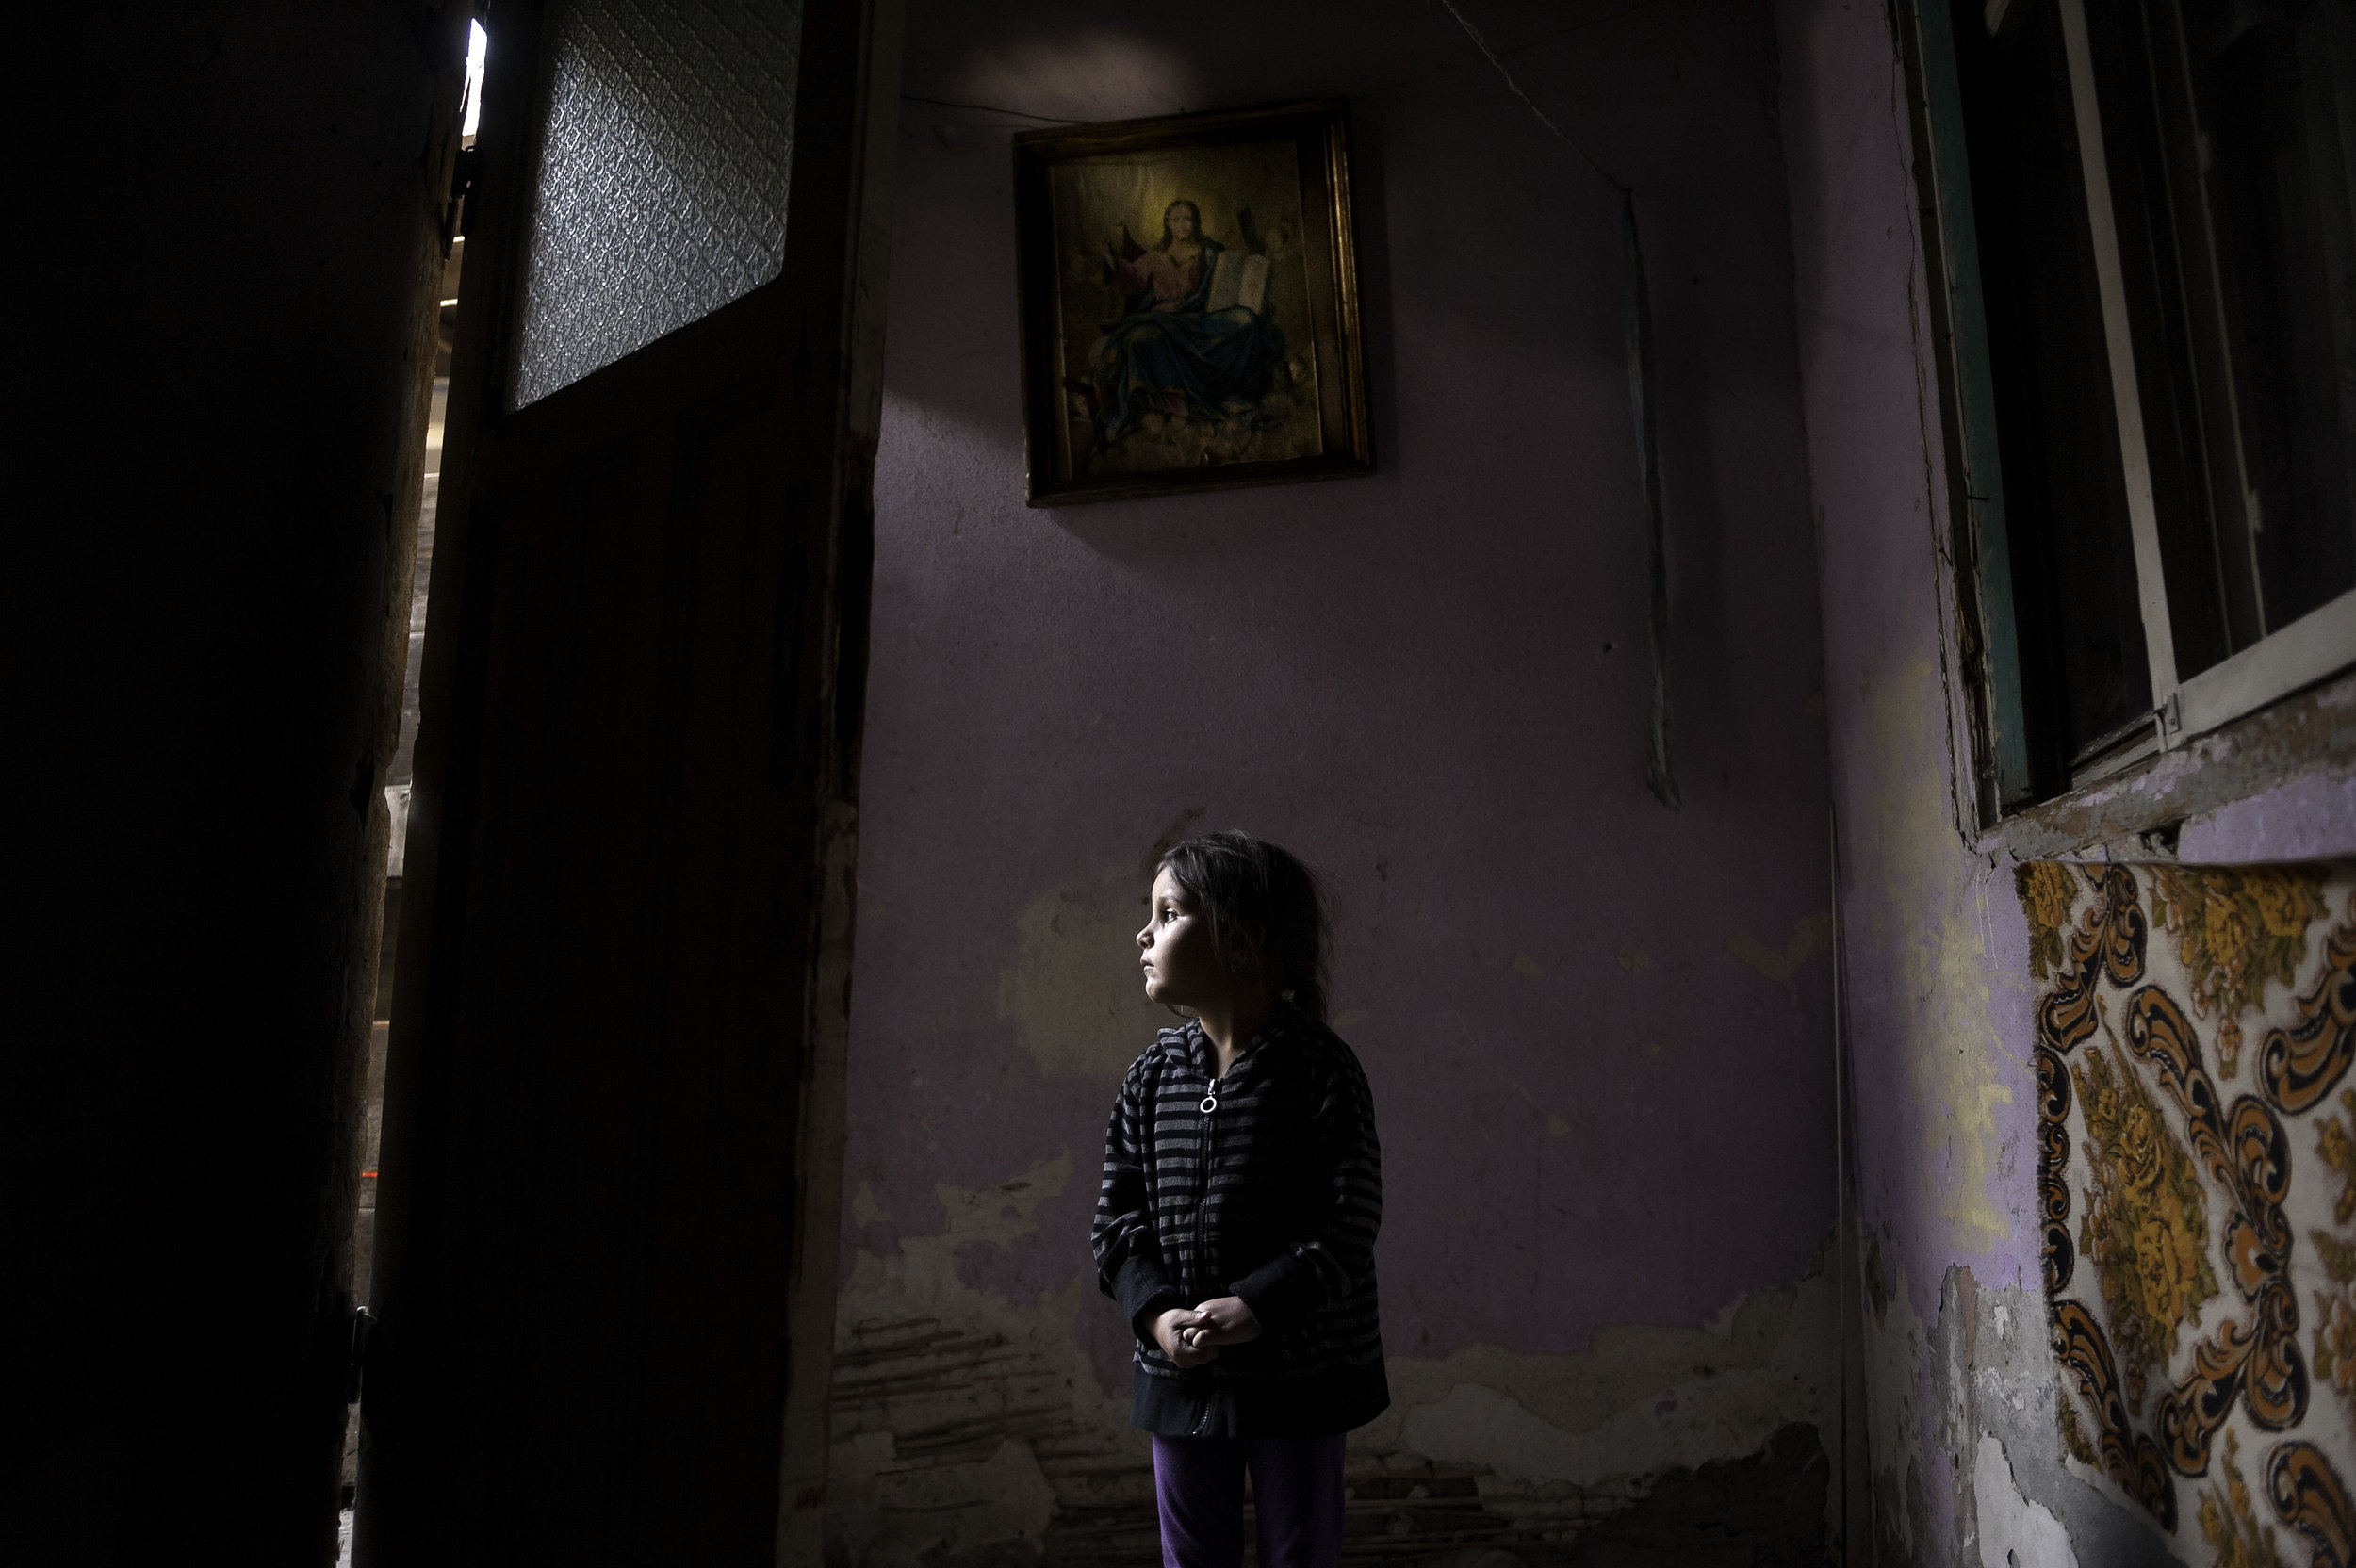 HOPING FOR A MIRACLE - Four-year-old Ana-Maria Tudor stands in the light of her doorway in Bucharest, Romania, hoping for a miracle as her family faces eviction from the only home they have ever known. Her father developed an infection following recent gallbladder surgery that has left him unable to work. The one room they live in has no bathroom or running water.